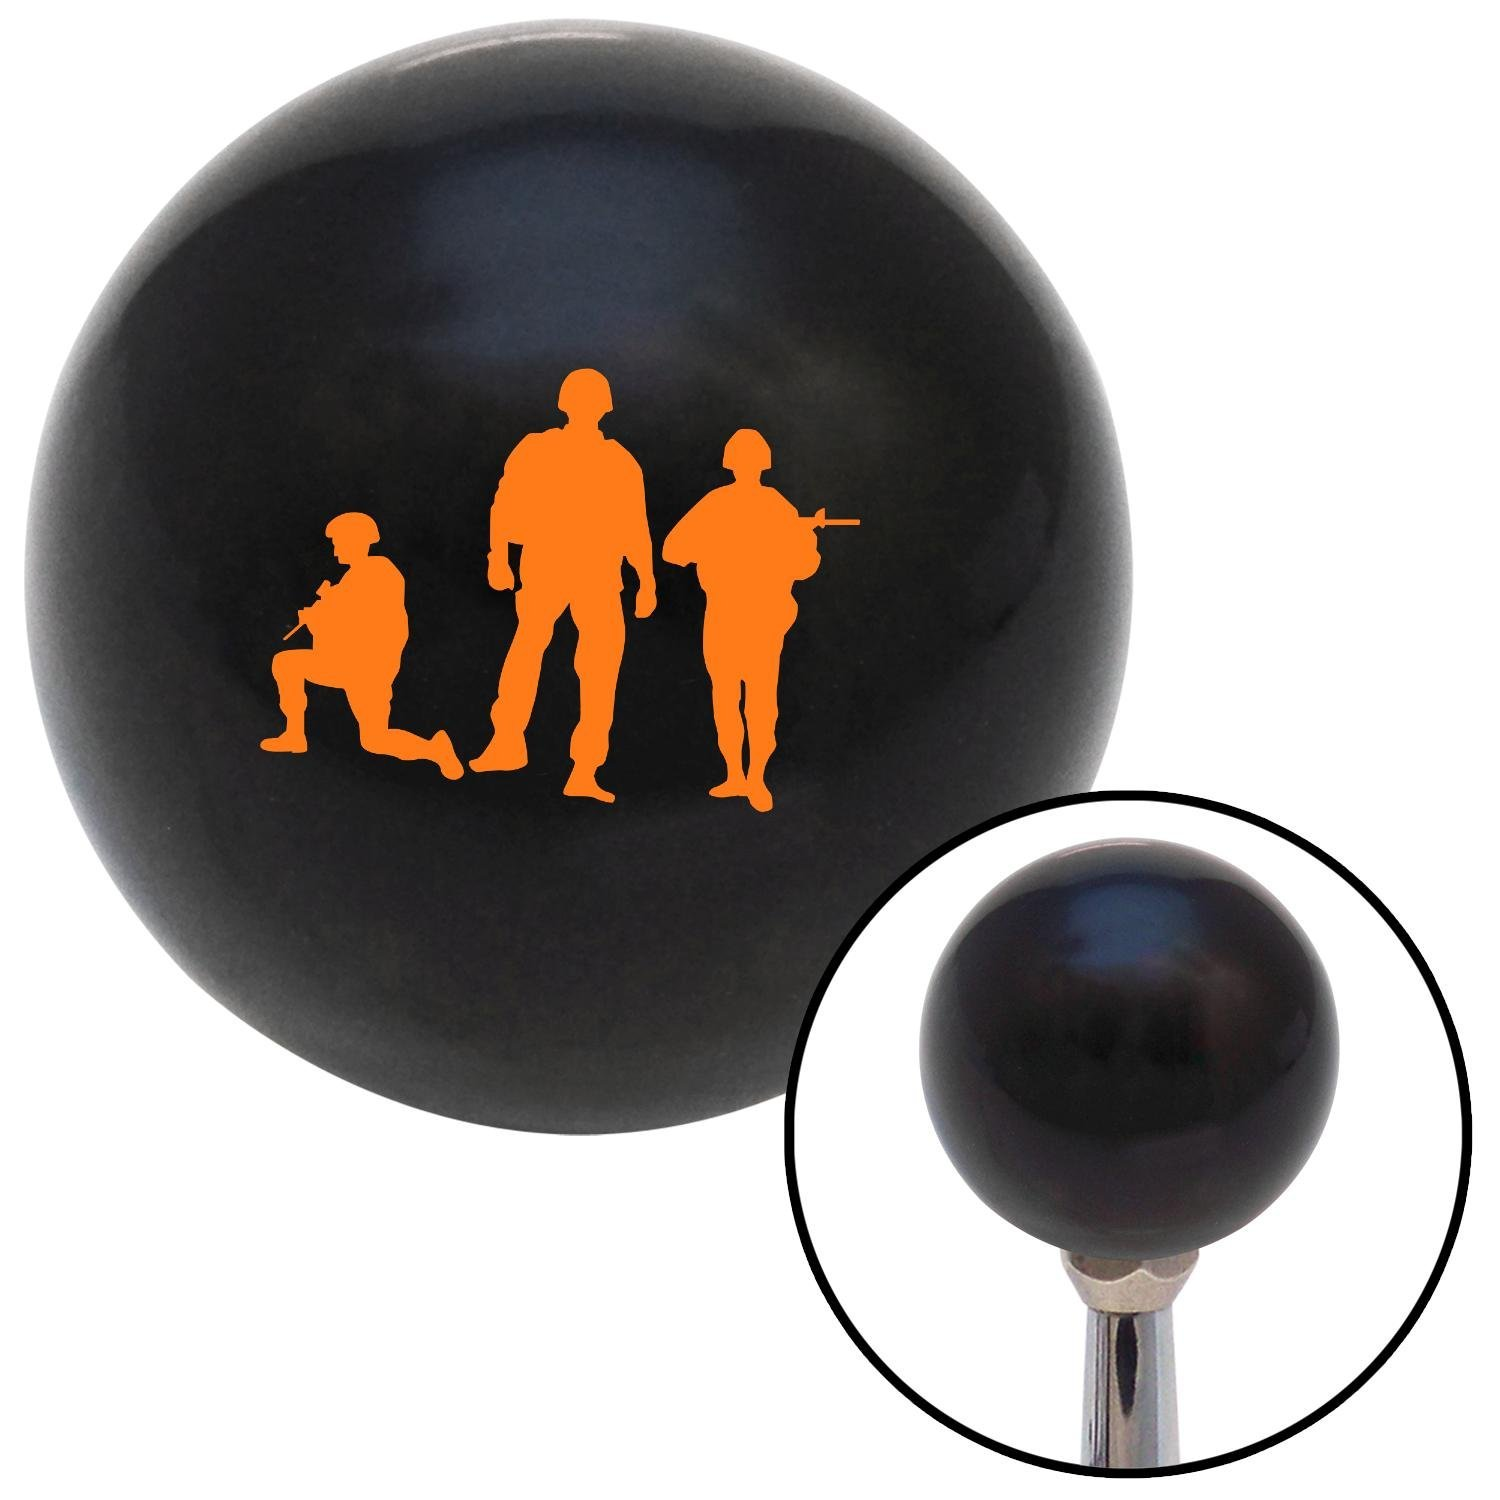 American Shifter 106947 Black Shift Knob with M16 x 1.5 Insert Orange Soldiers